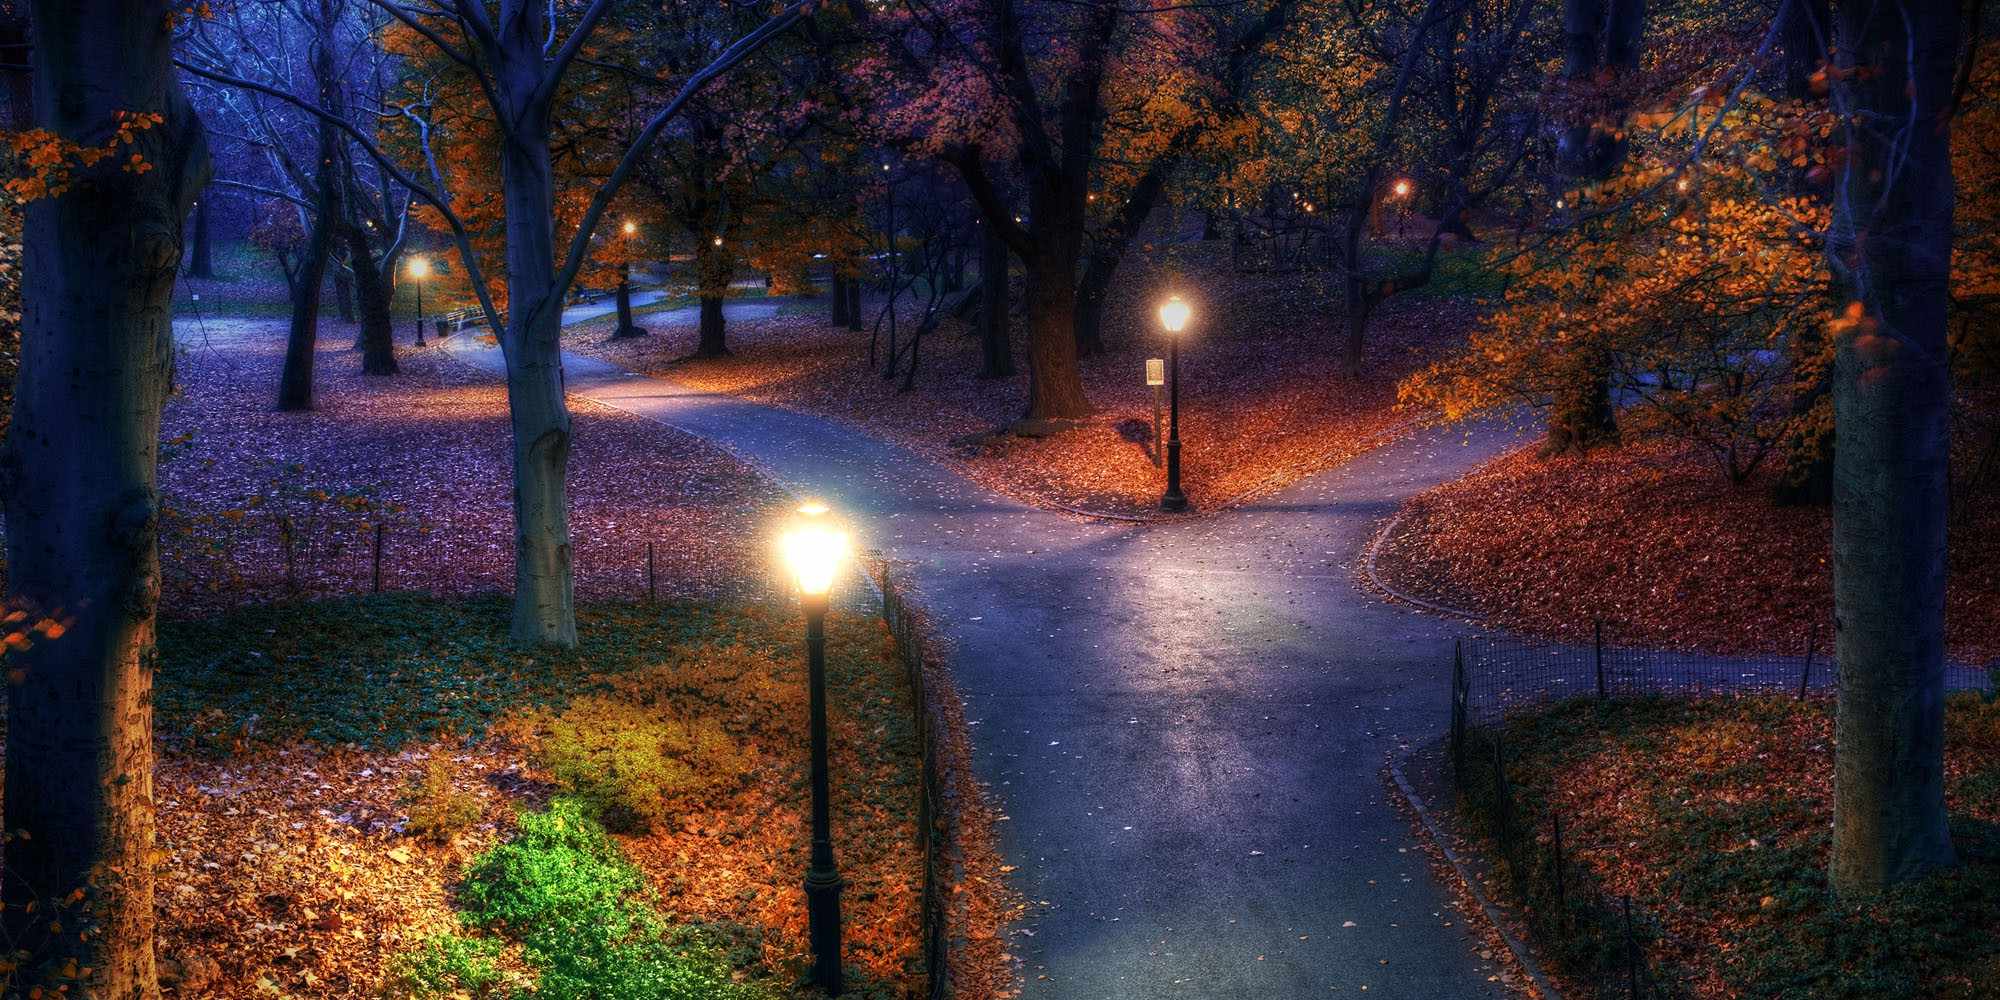 1000 Wallpapers For Girls Fall Park New York City Trees Walkway Street Light